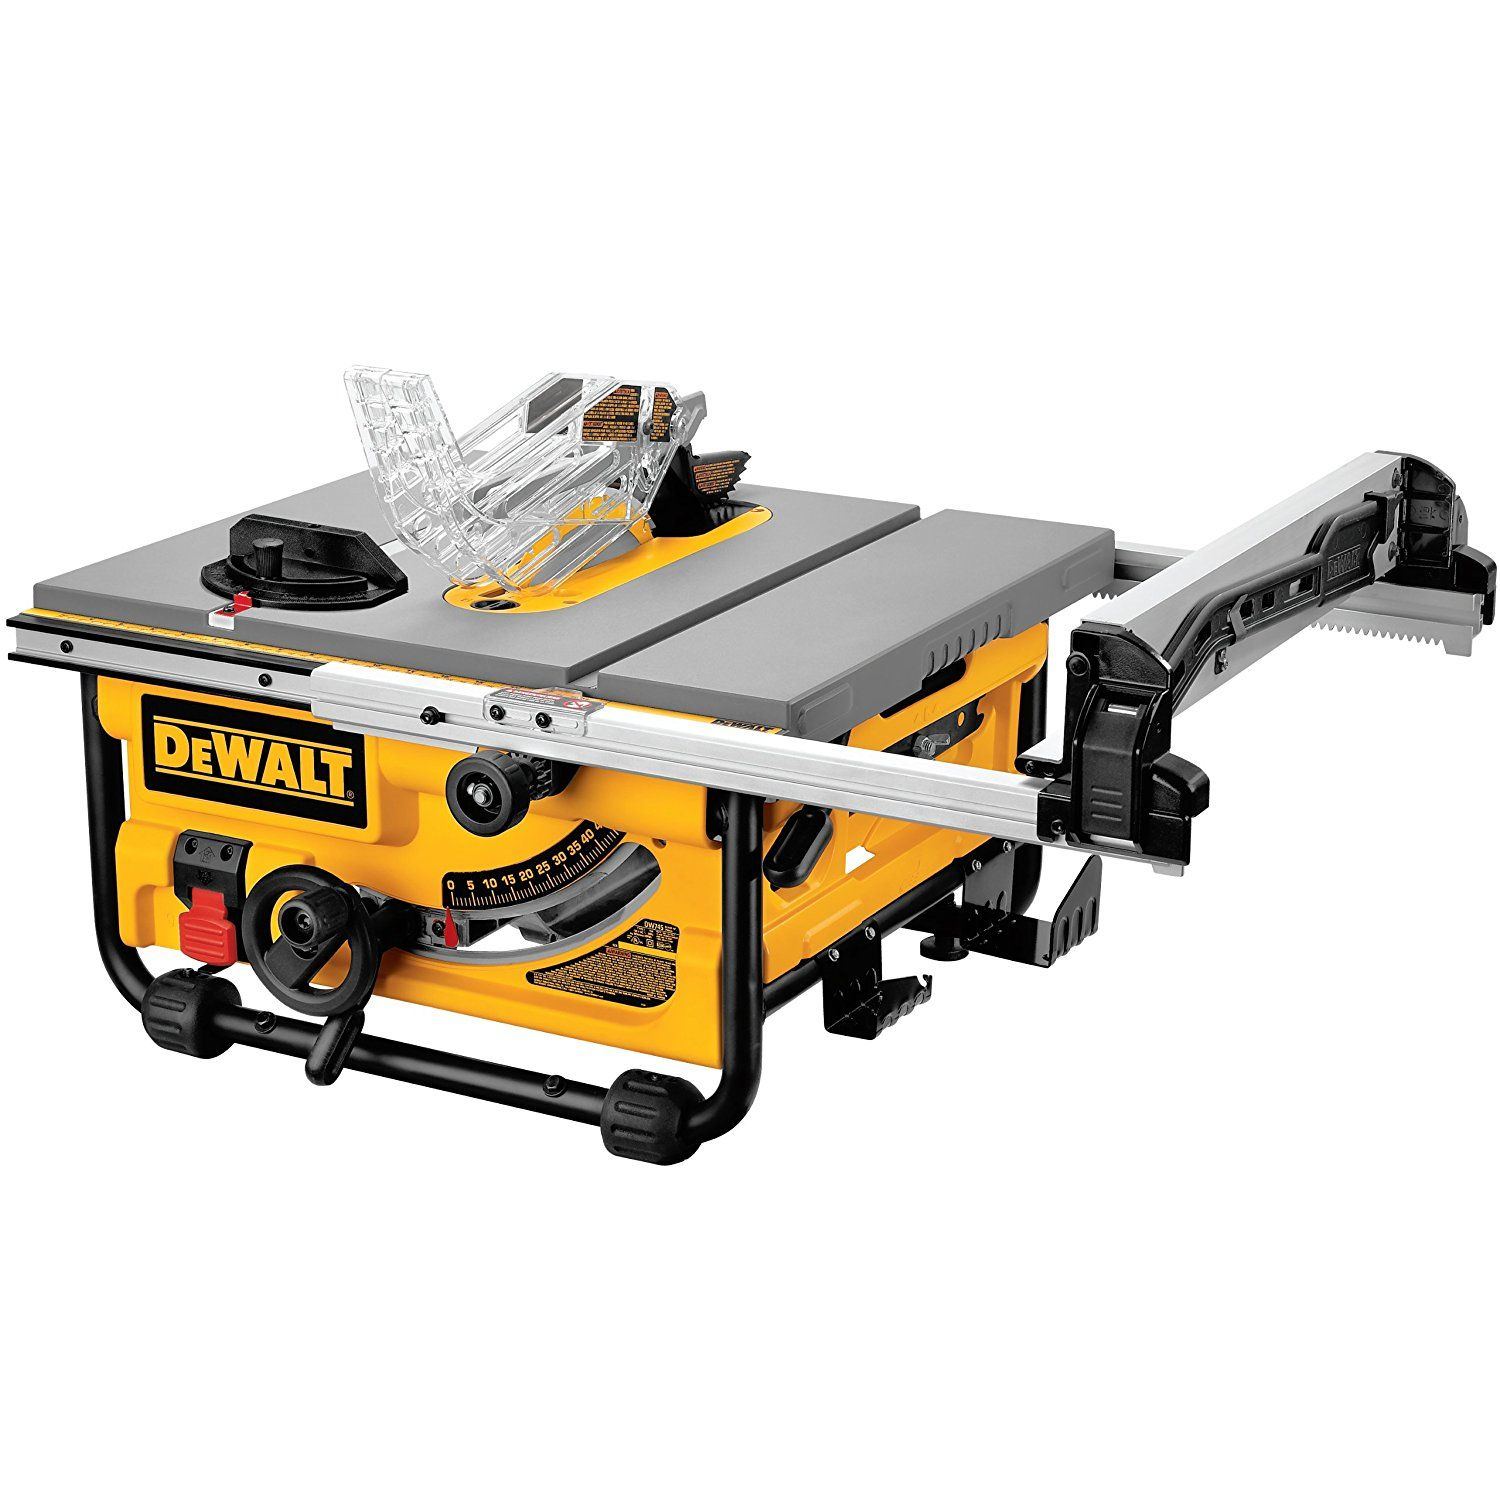 Best Beginner Table Saw Best Table Saw 10 Inch Table Saw Jobsite Table Saw